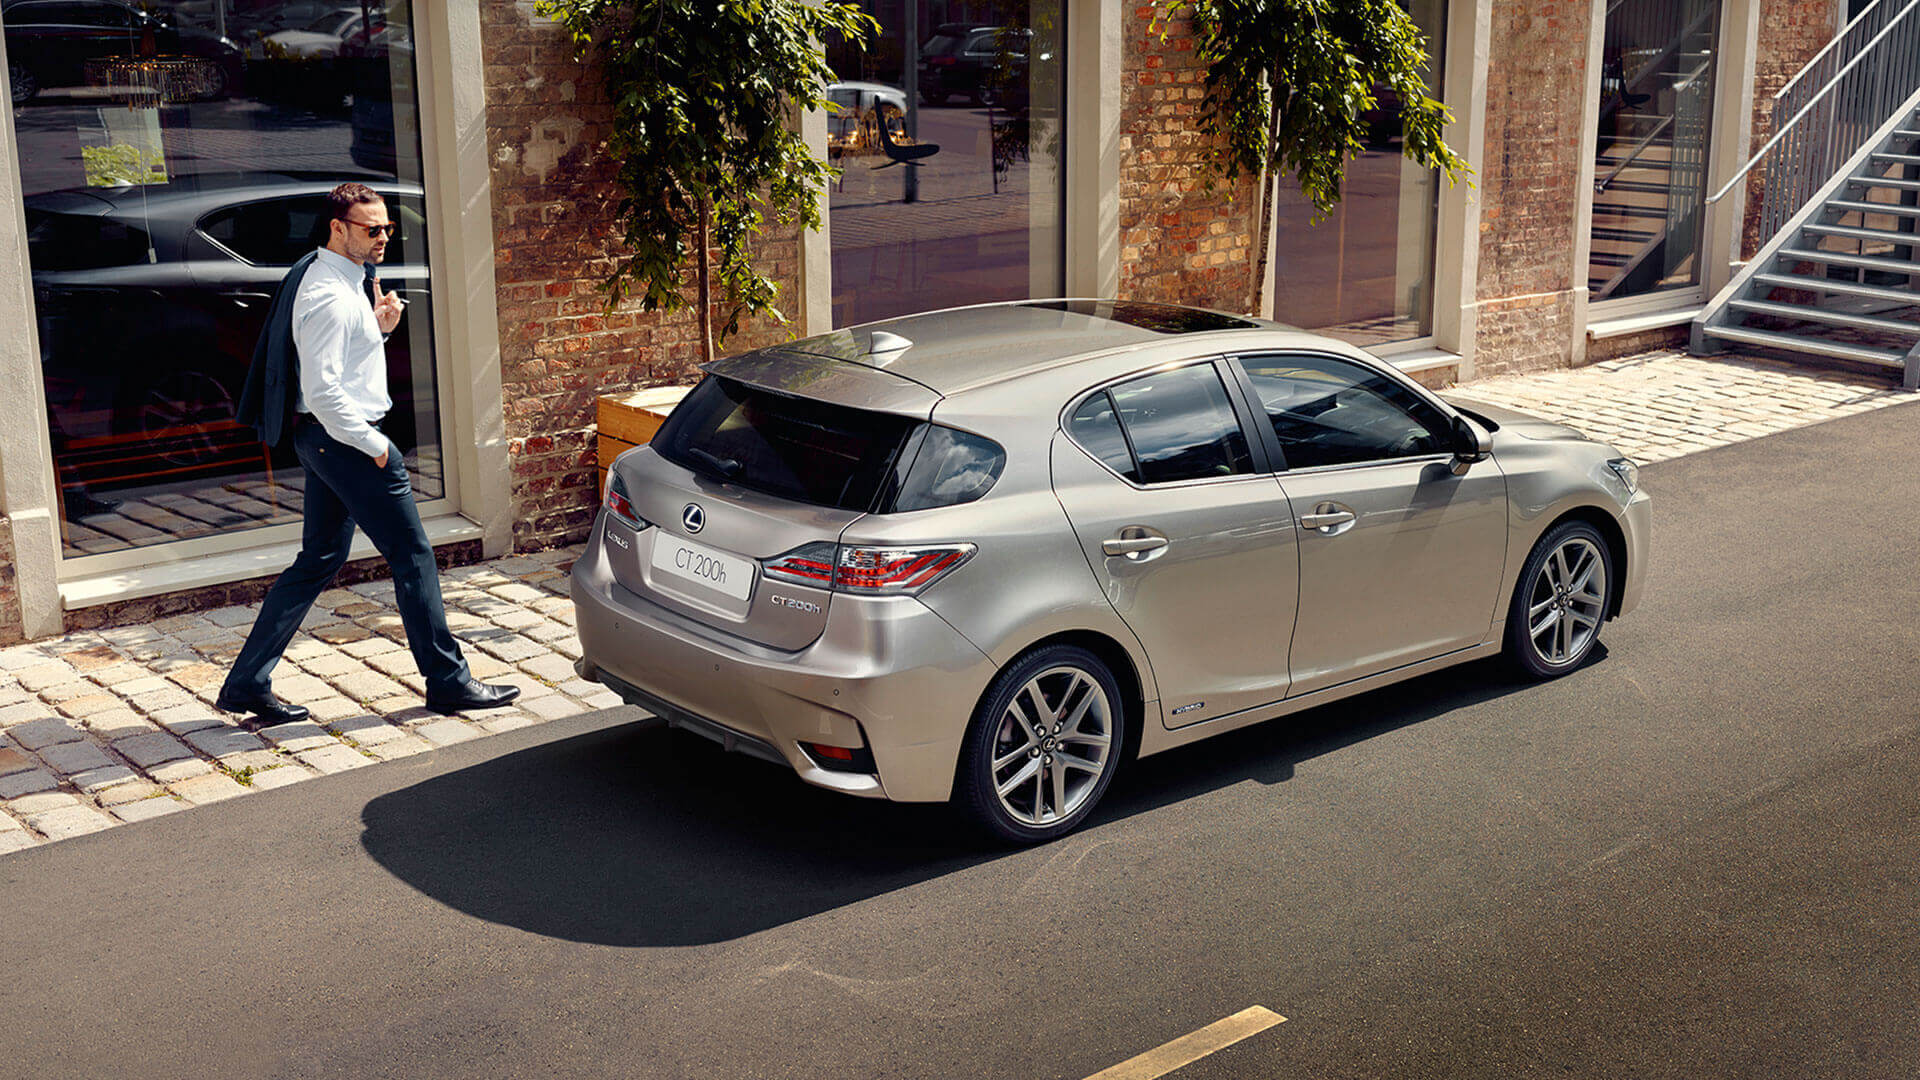 2017 lexus ct 200h next steps personalise 001